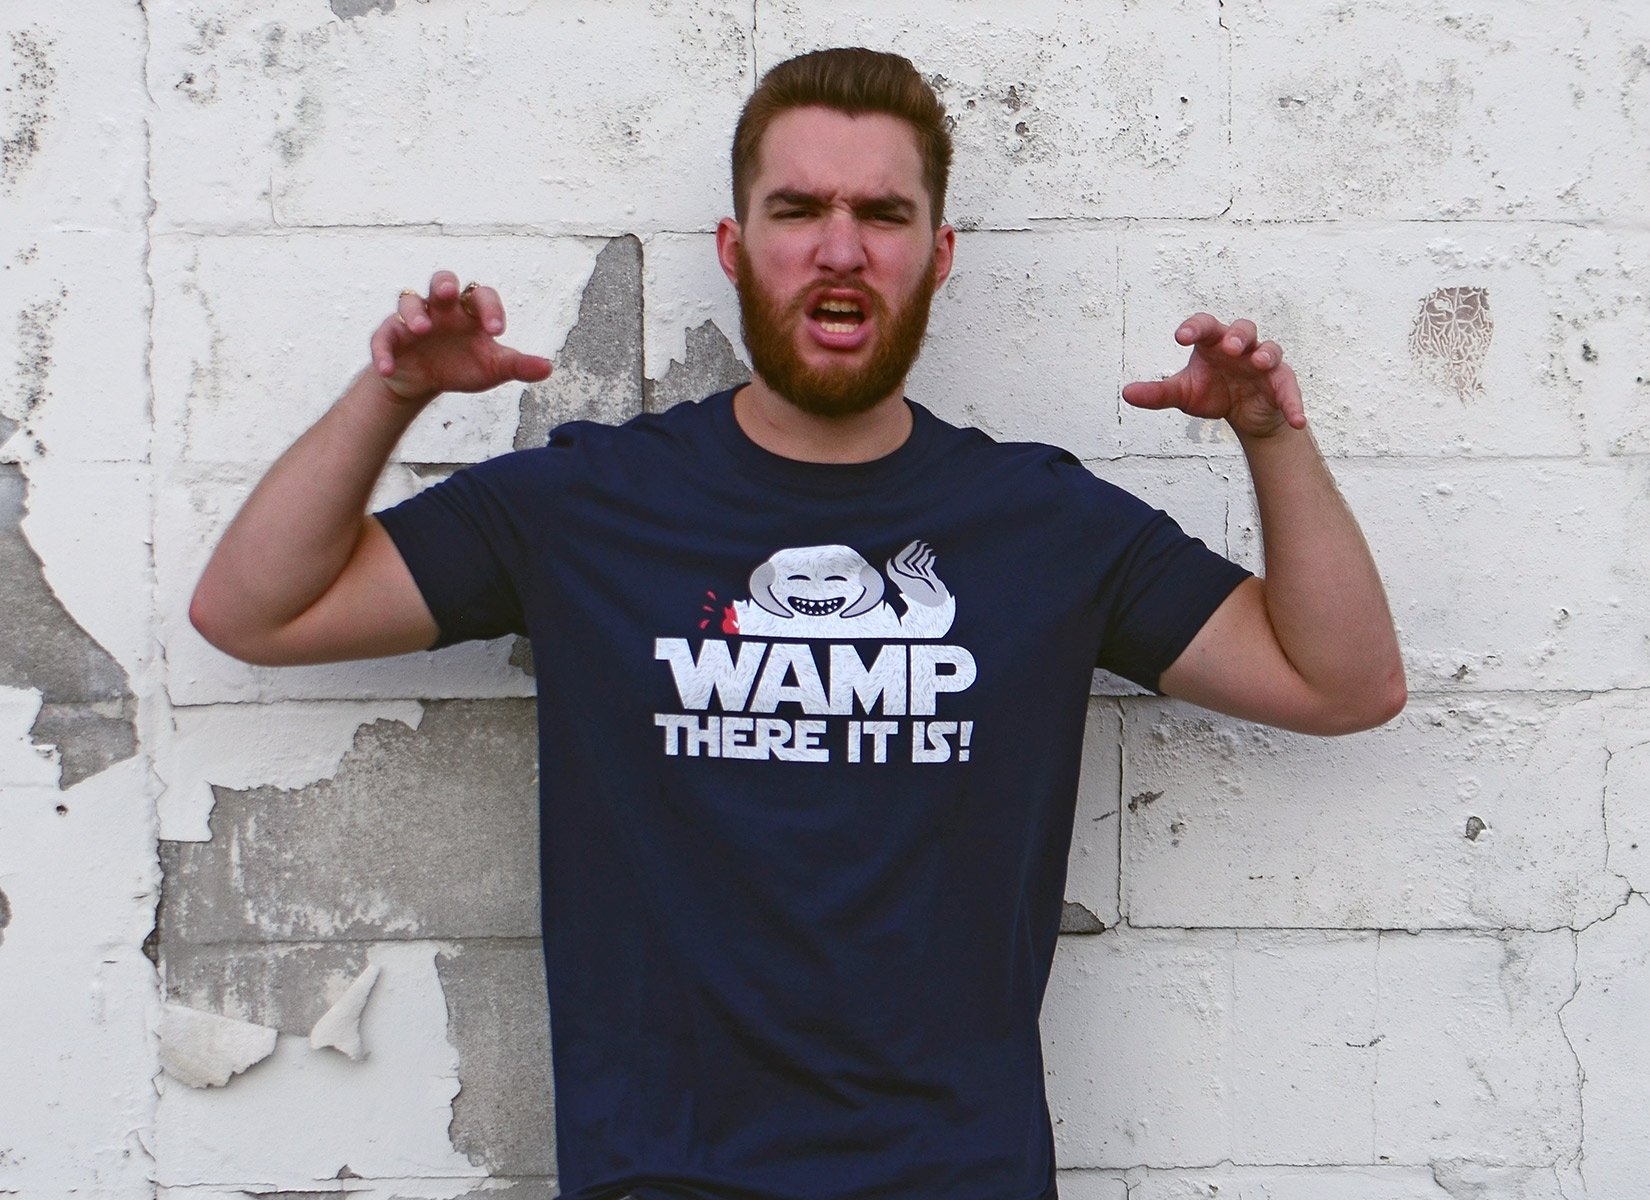 Wamp There It Is on Mens T-Shirt